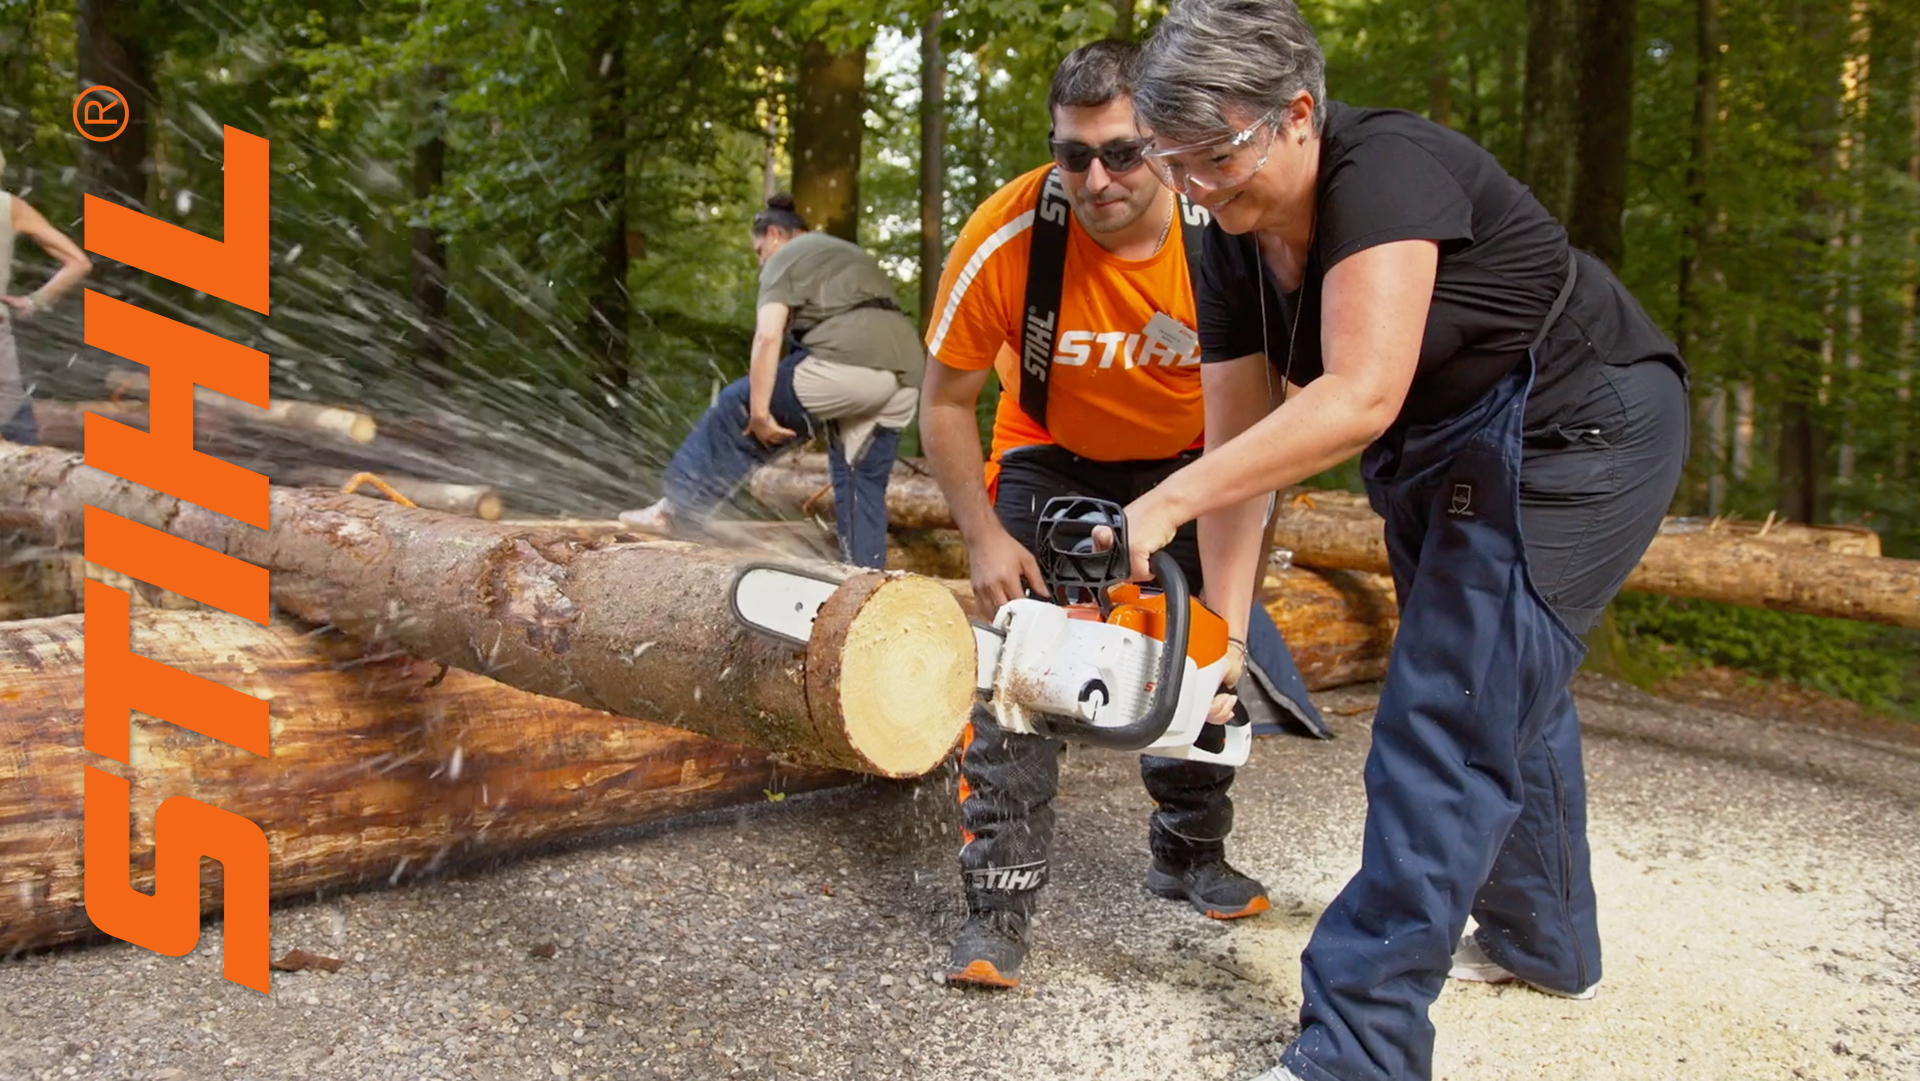 Stihl Event Video